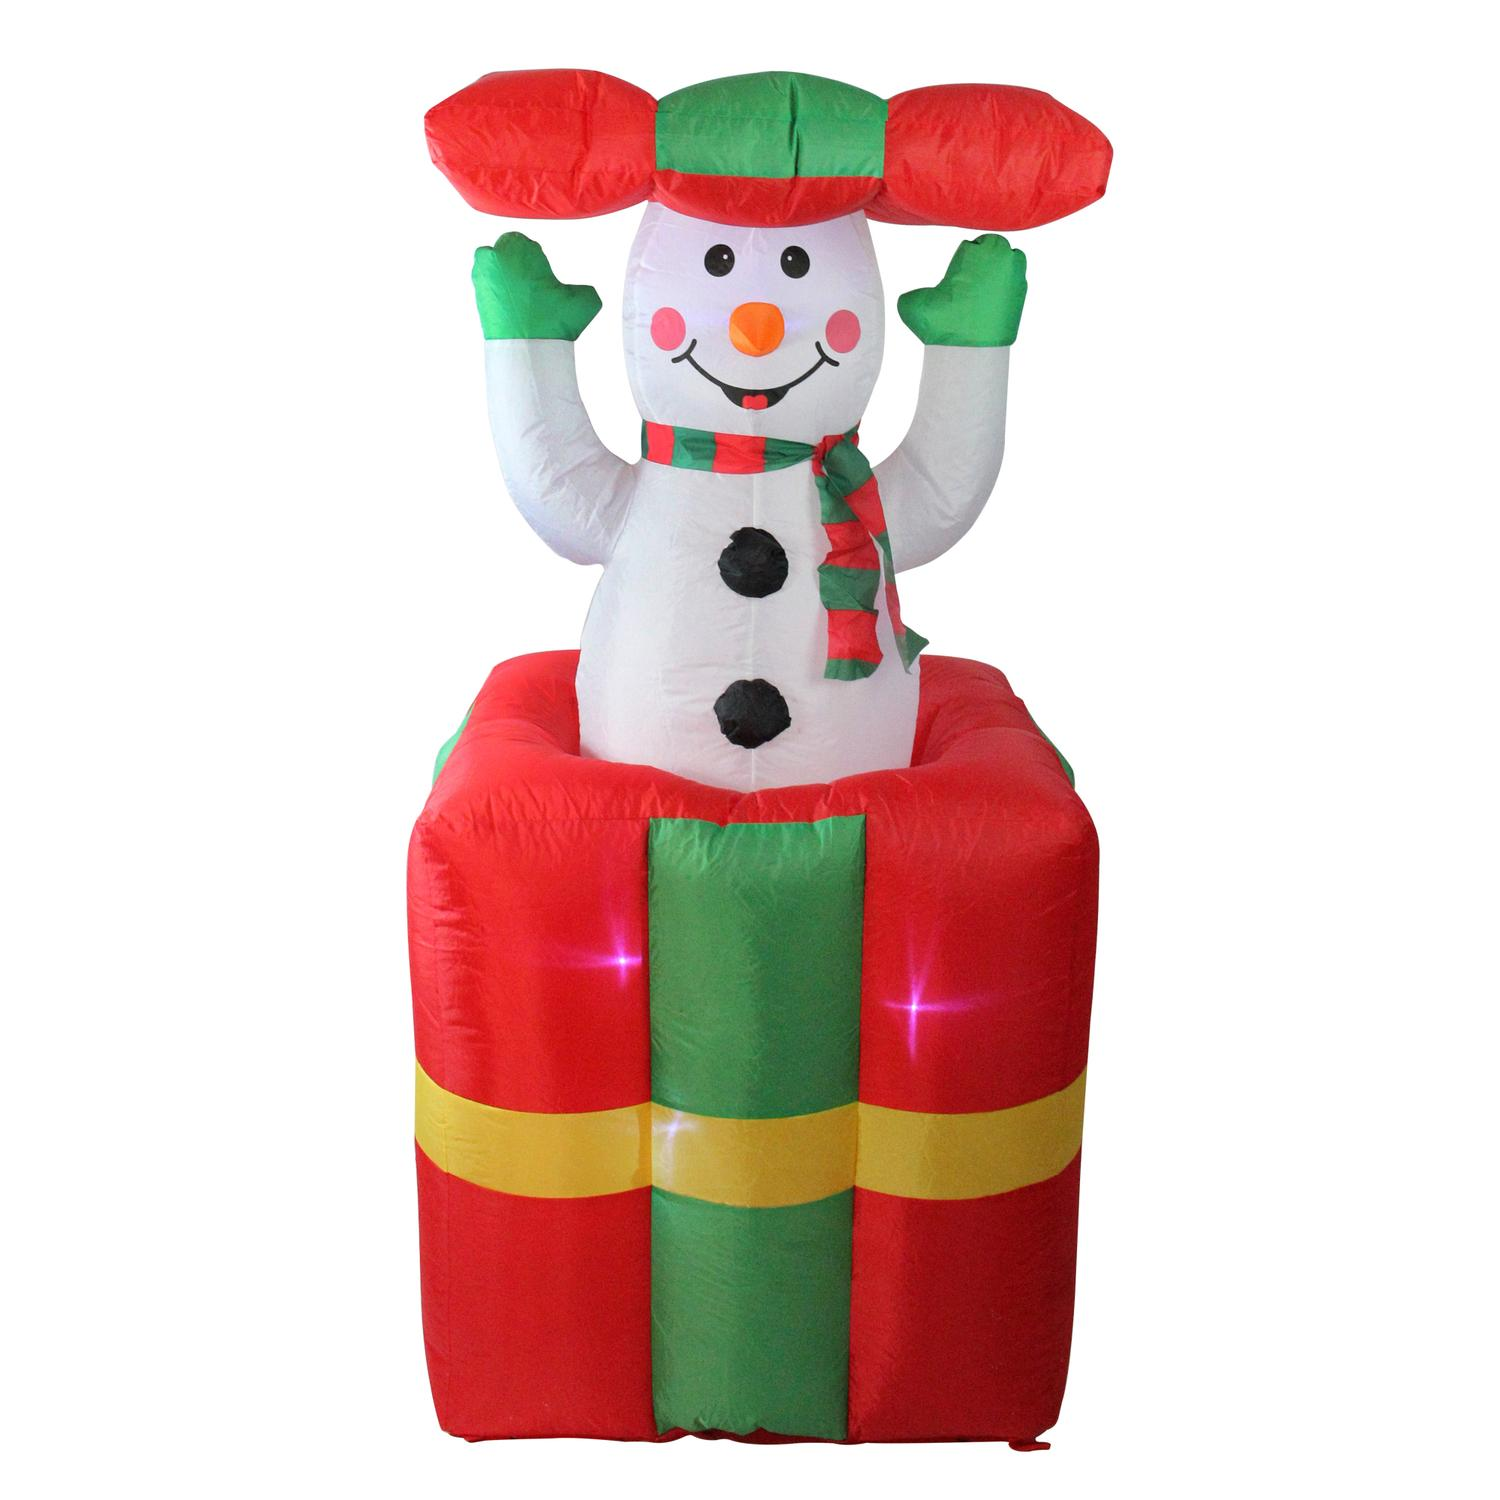 Lb International 5' Lighted Inflatable Pop Up Snowman in Gift Box Christmas Yard Art Decoration